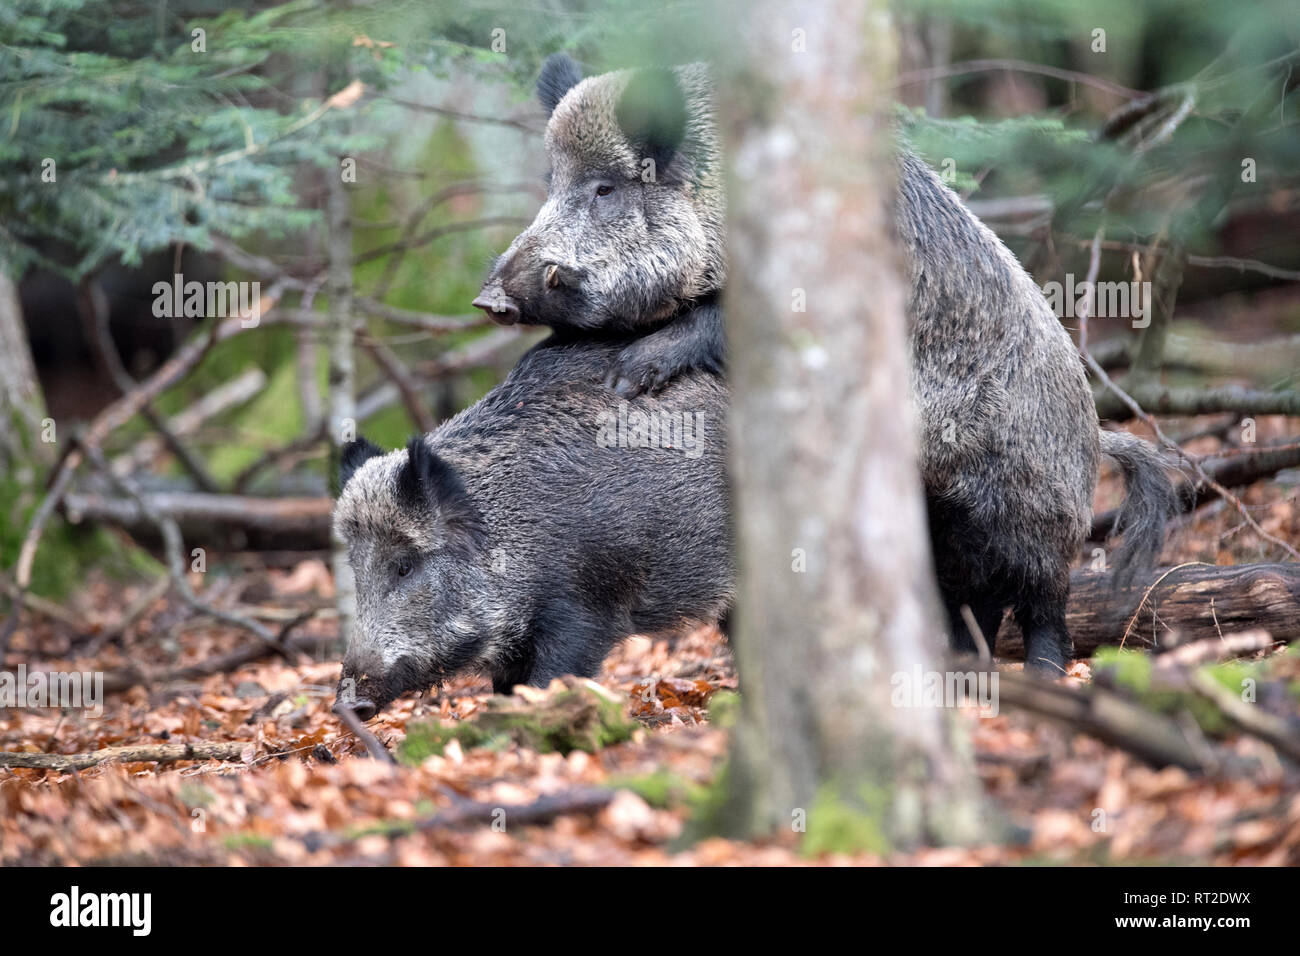 Aufreiten, pigs, beech mast, beech forest, Copula, real pigs, cloven-hoofed animals, mating, mating act of wild boars, sow, making a mess, making a me - Stock Image